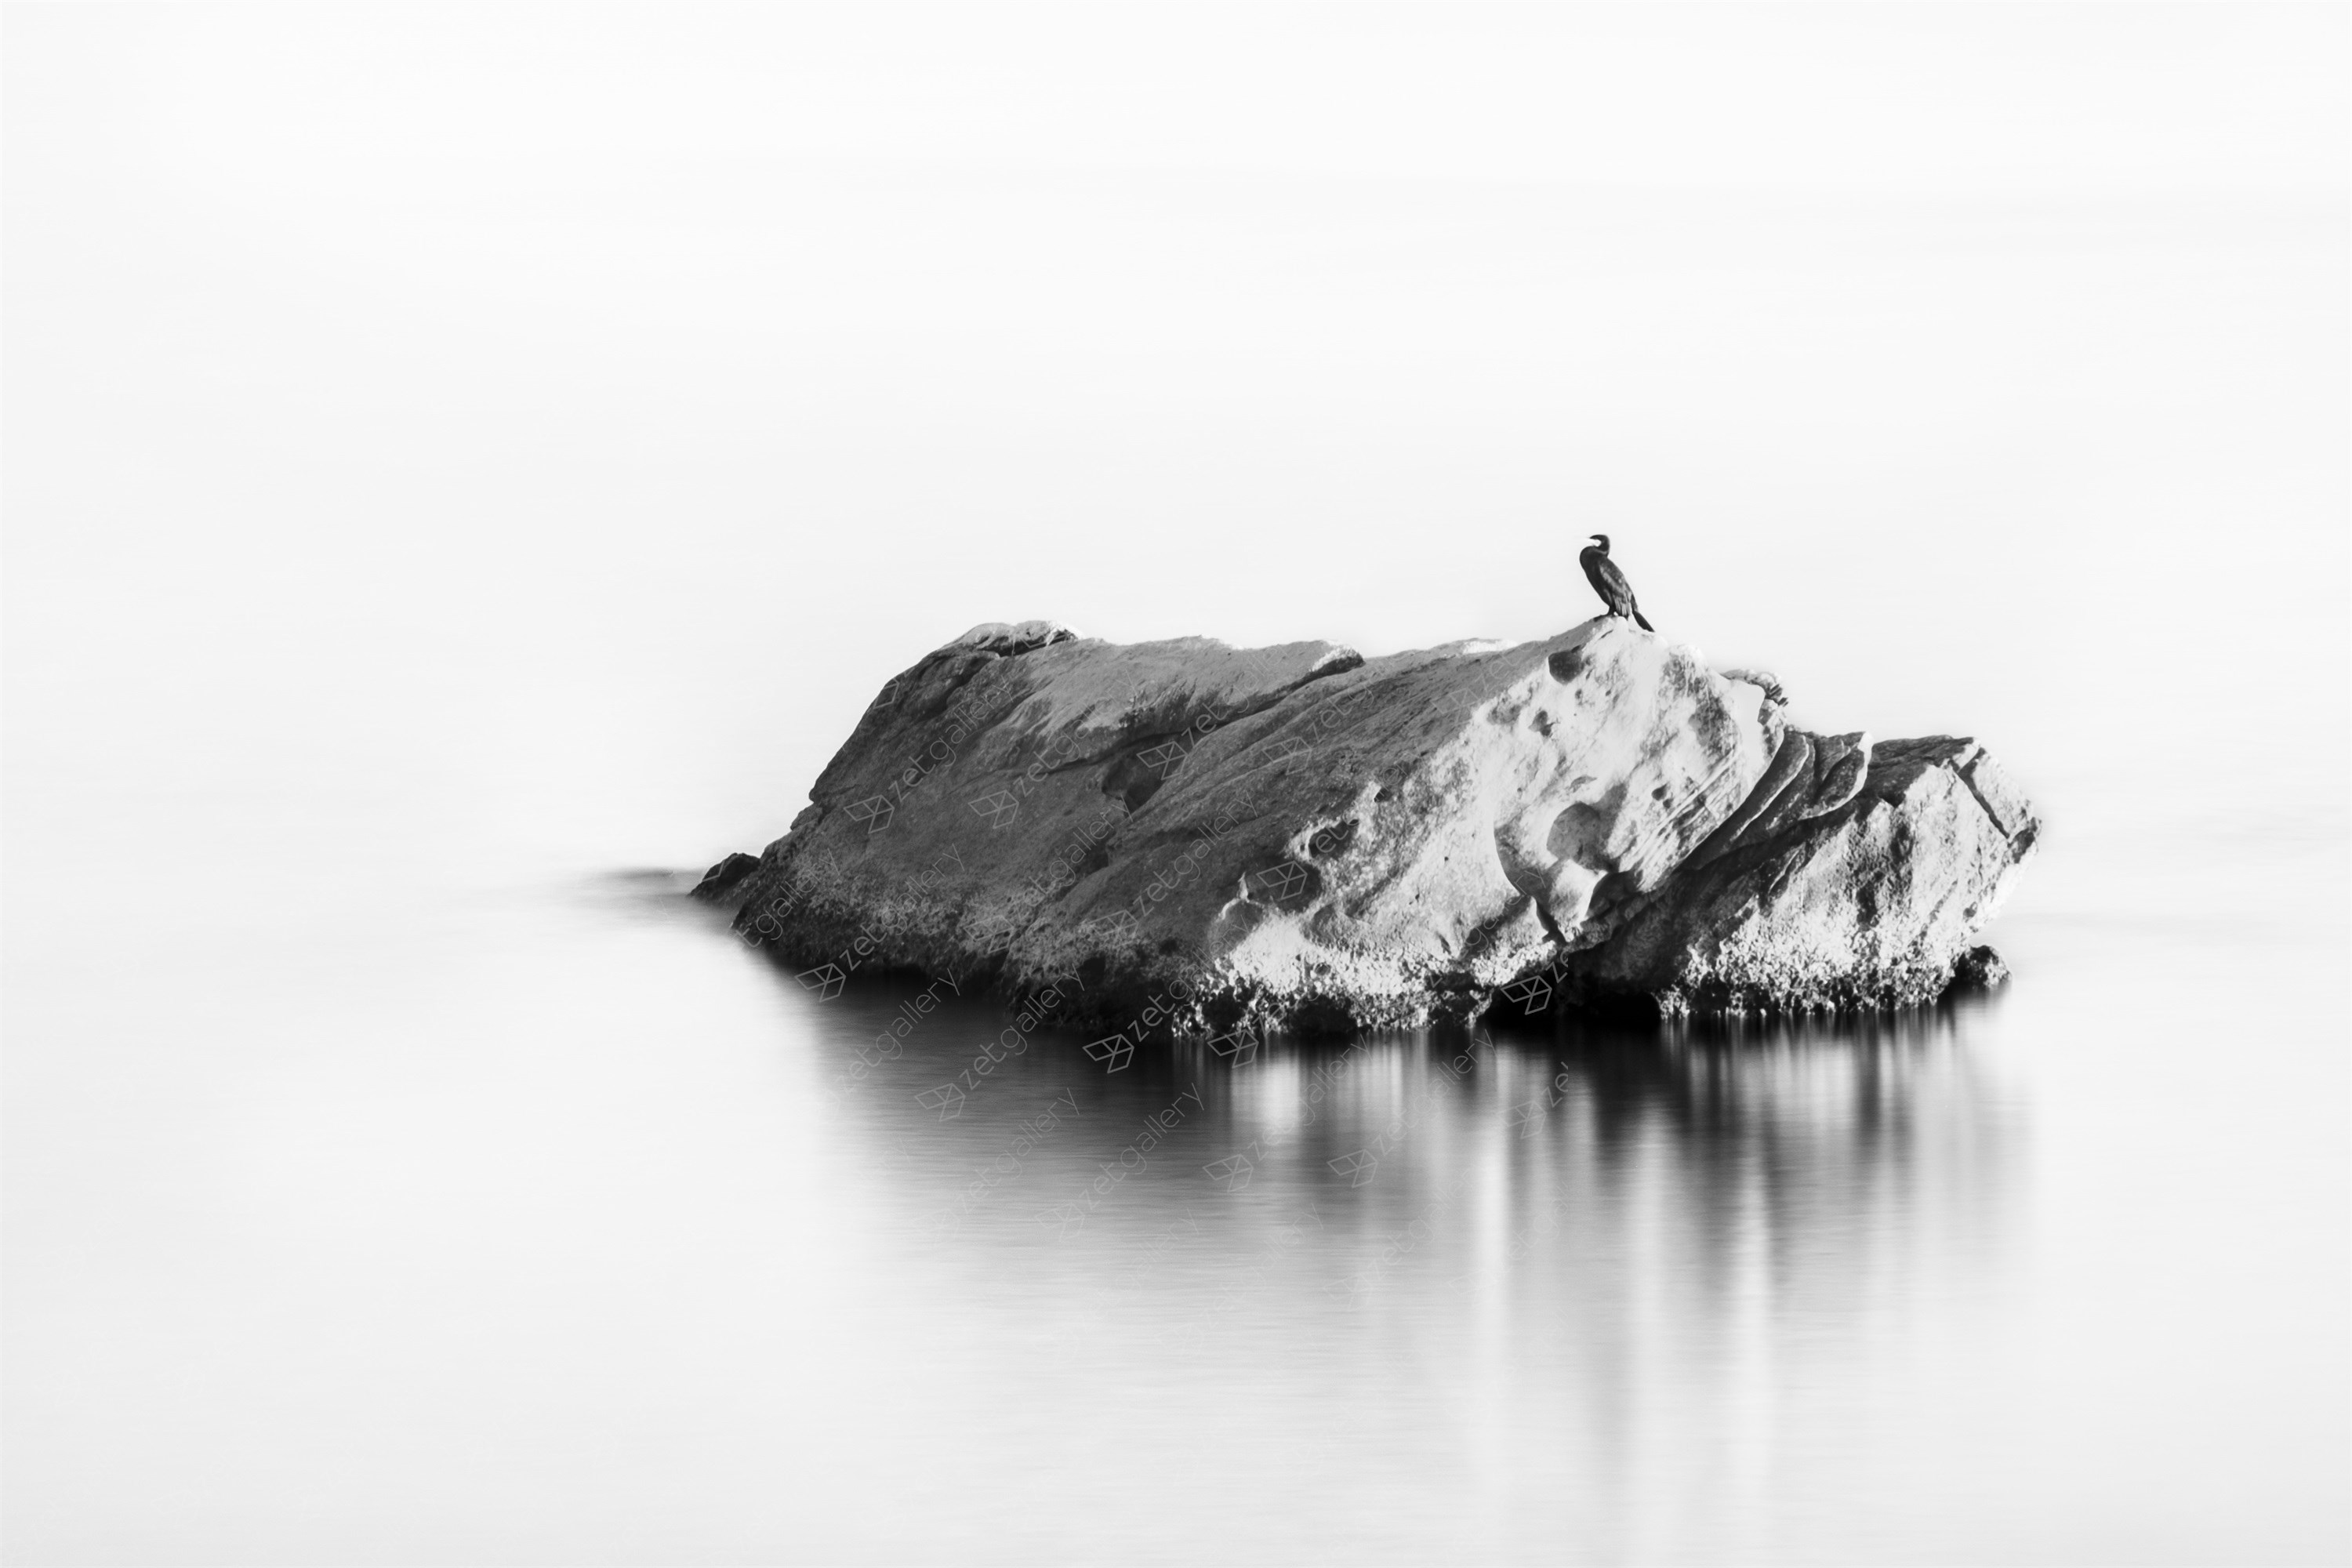 BIRD ON A ROCK, Extra Large Edition 1 of 3, original Abstract Digital Photography by Benjamin Lurie